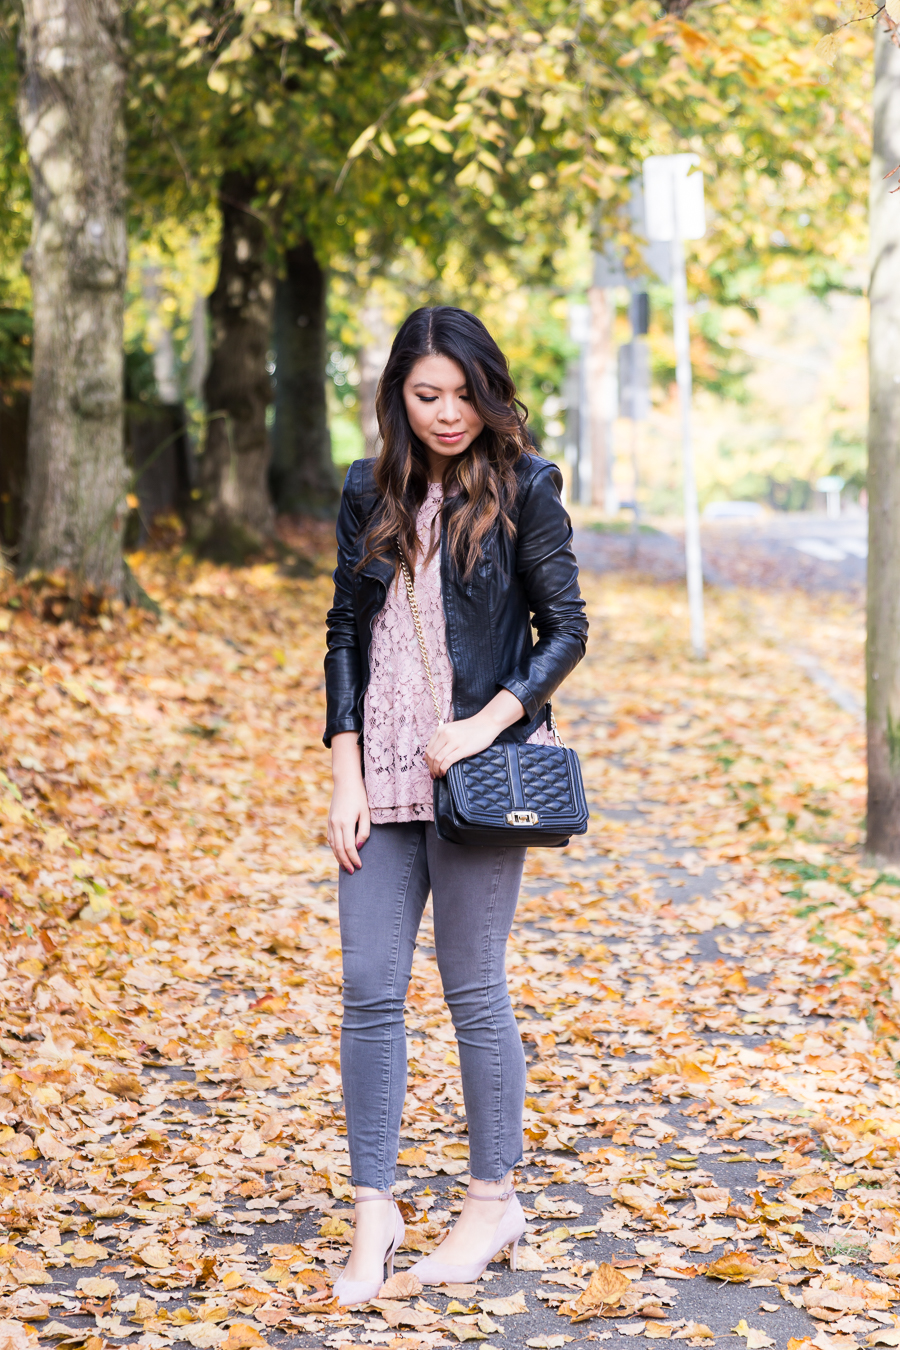 Blush Lace Top + Faux Leather Jacket